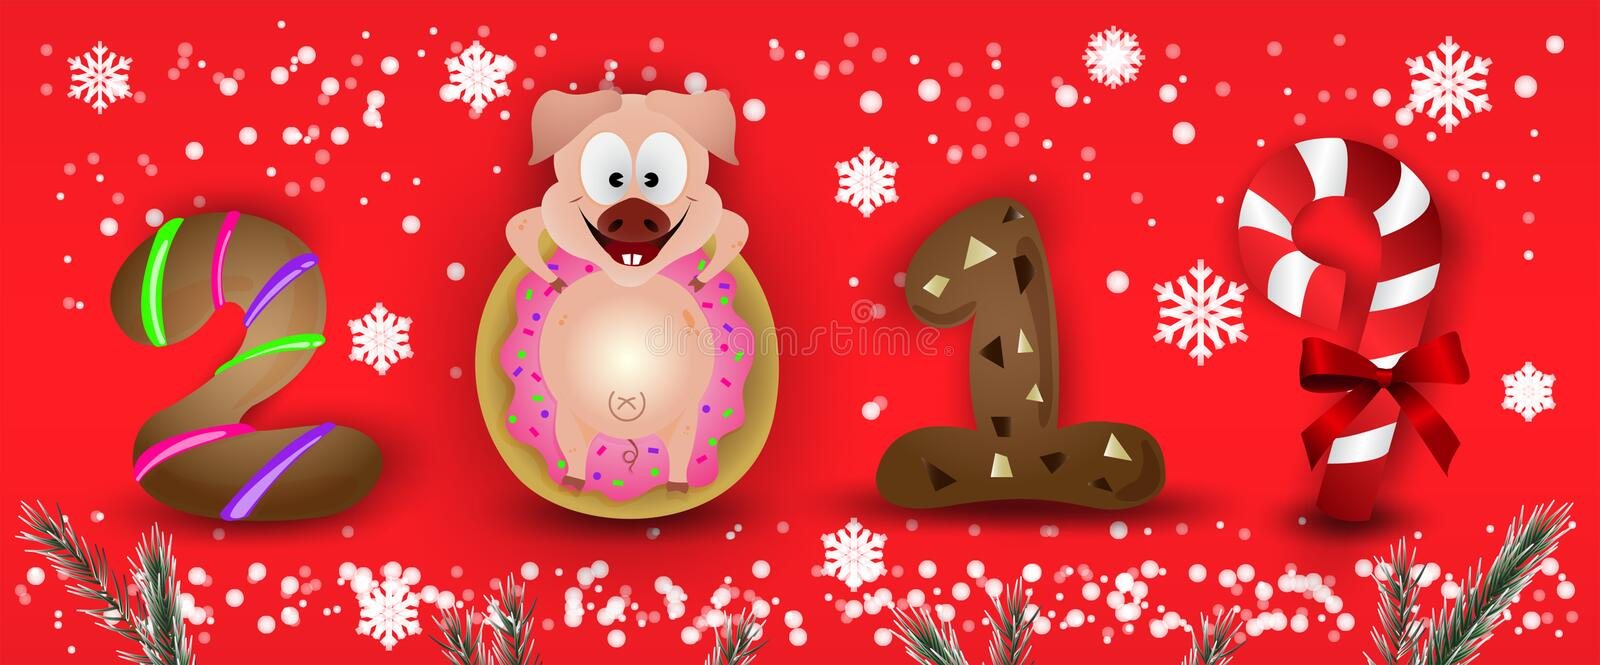 Happy New Year 2019 zodiac pig characters cute with snowflakes & fir royalty free stock images